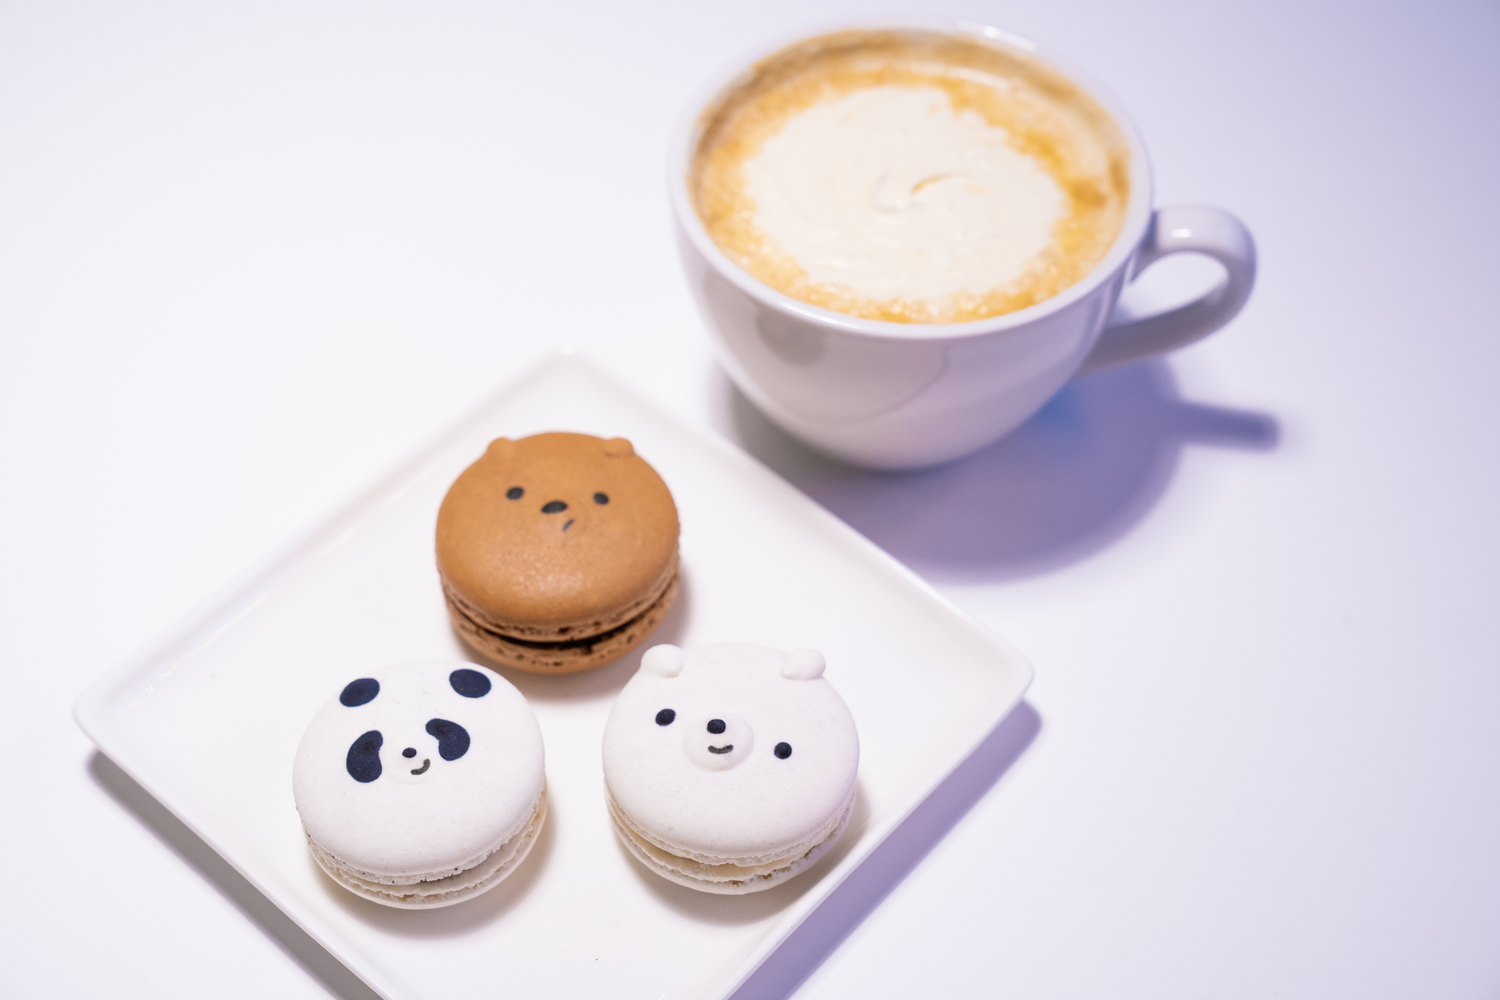 Coffee cup and plate with three We Bare Bears head macaroons